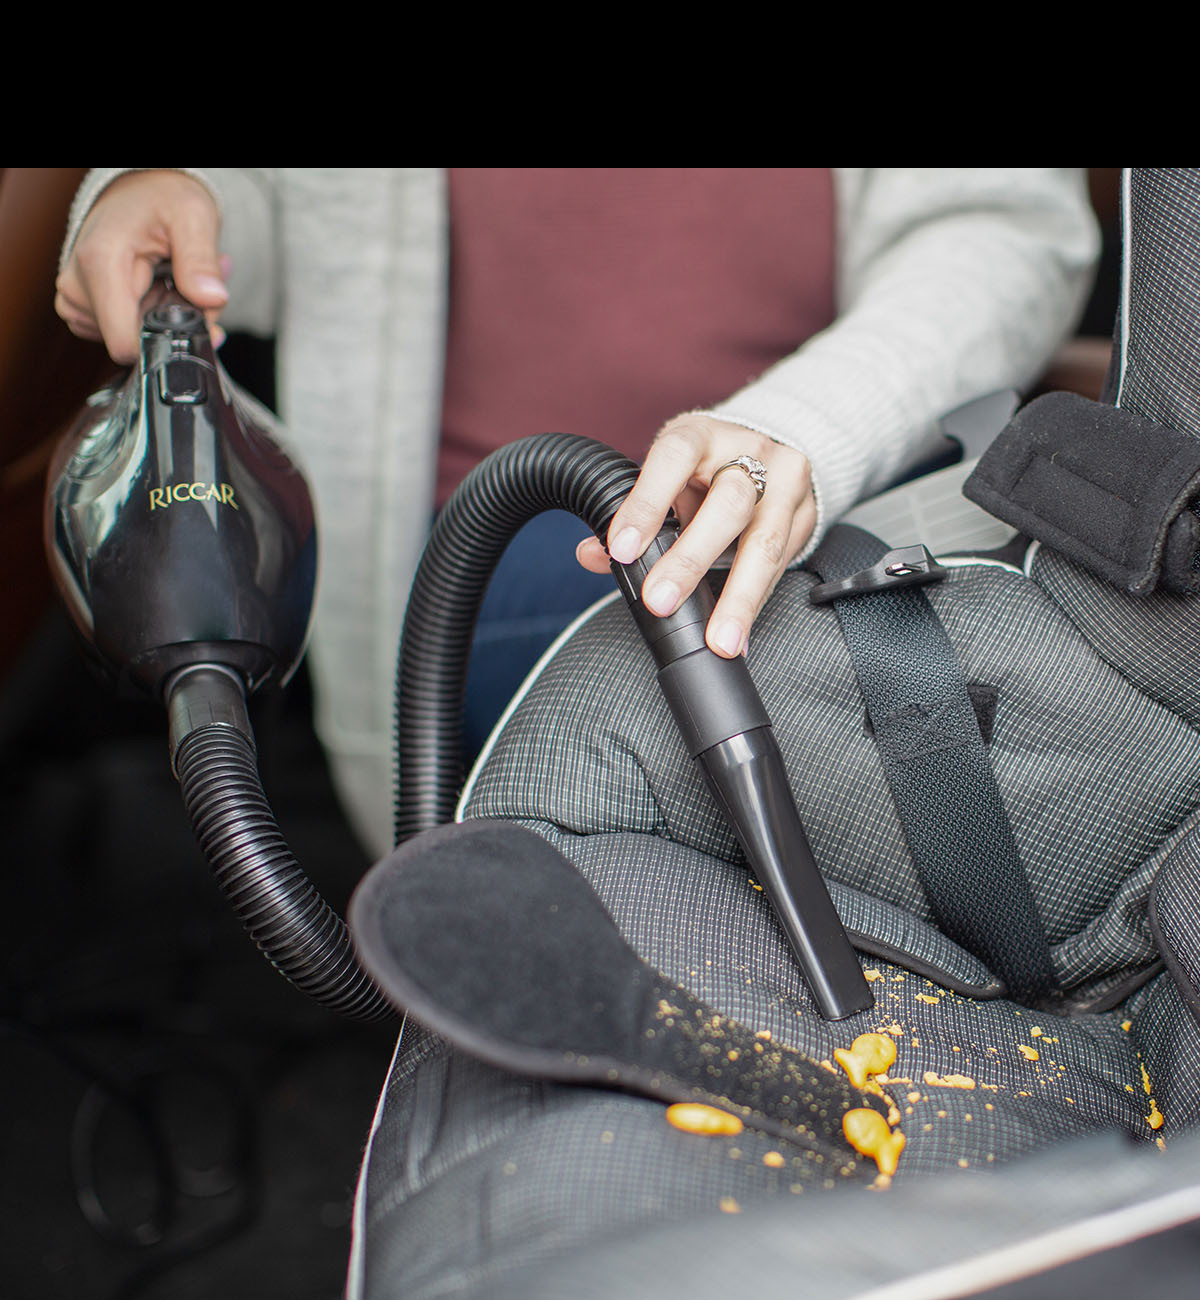 Gem is perfect for cleaning car seats and for keeping in the car during road trips